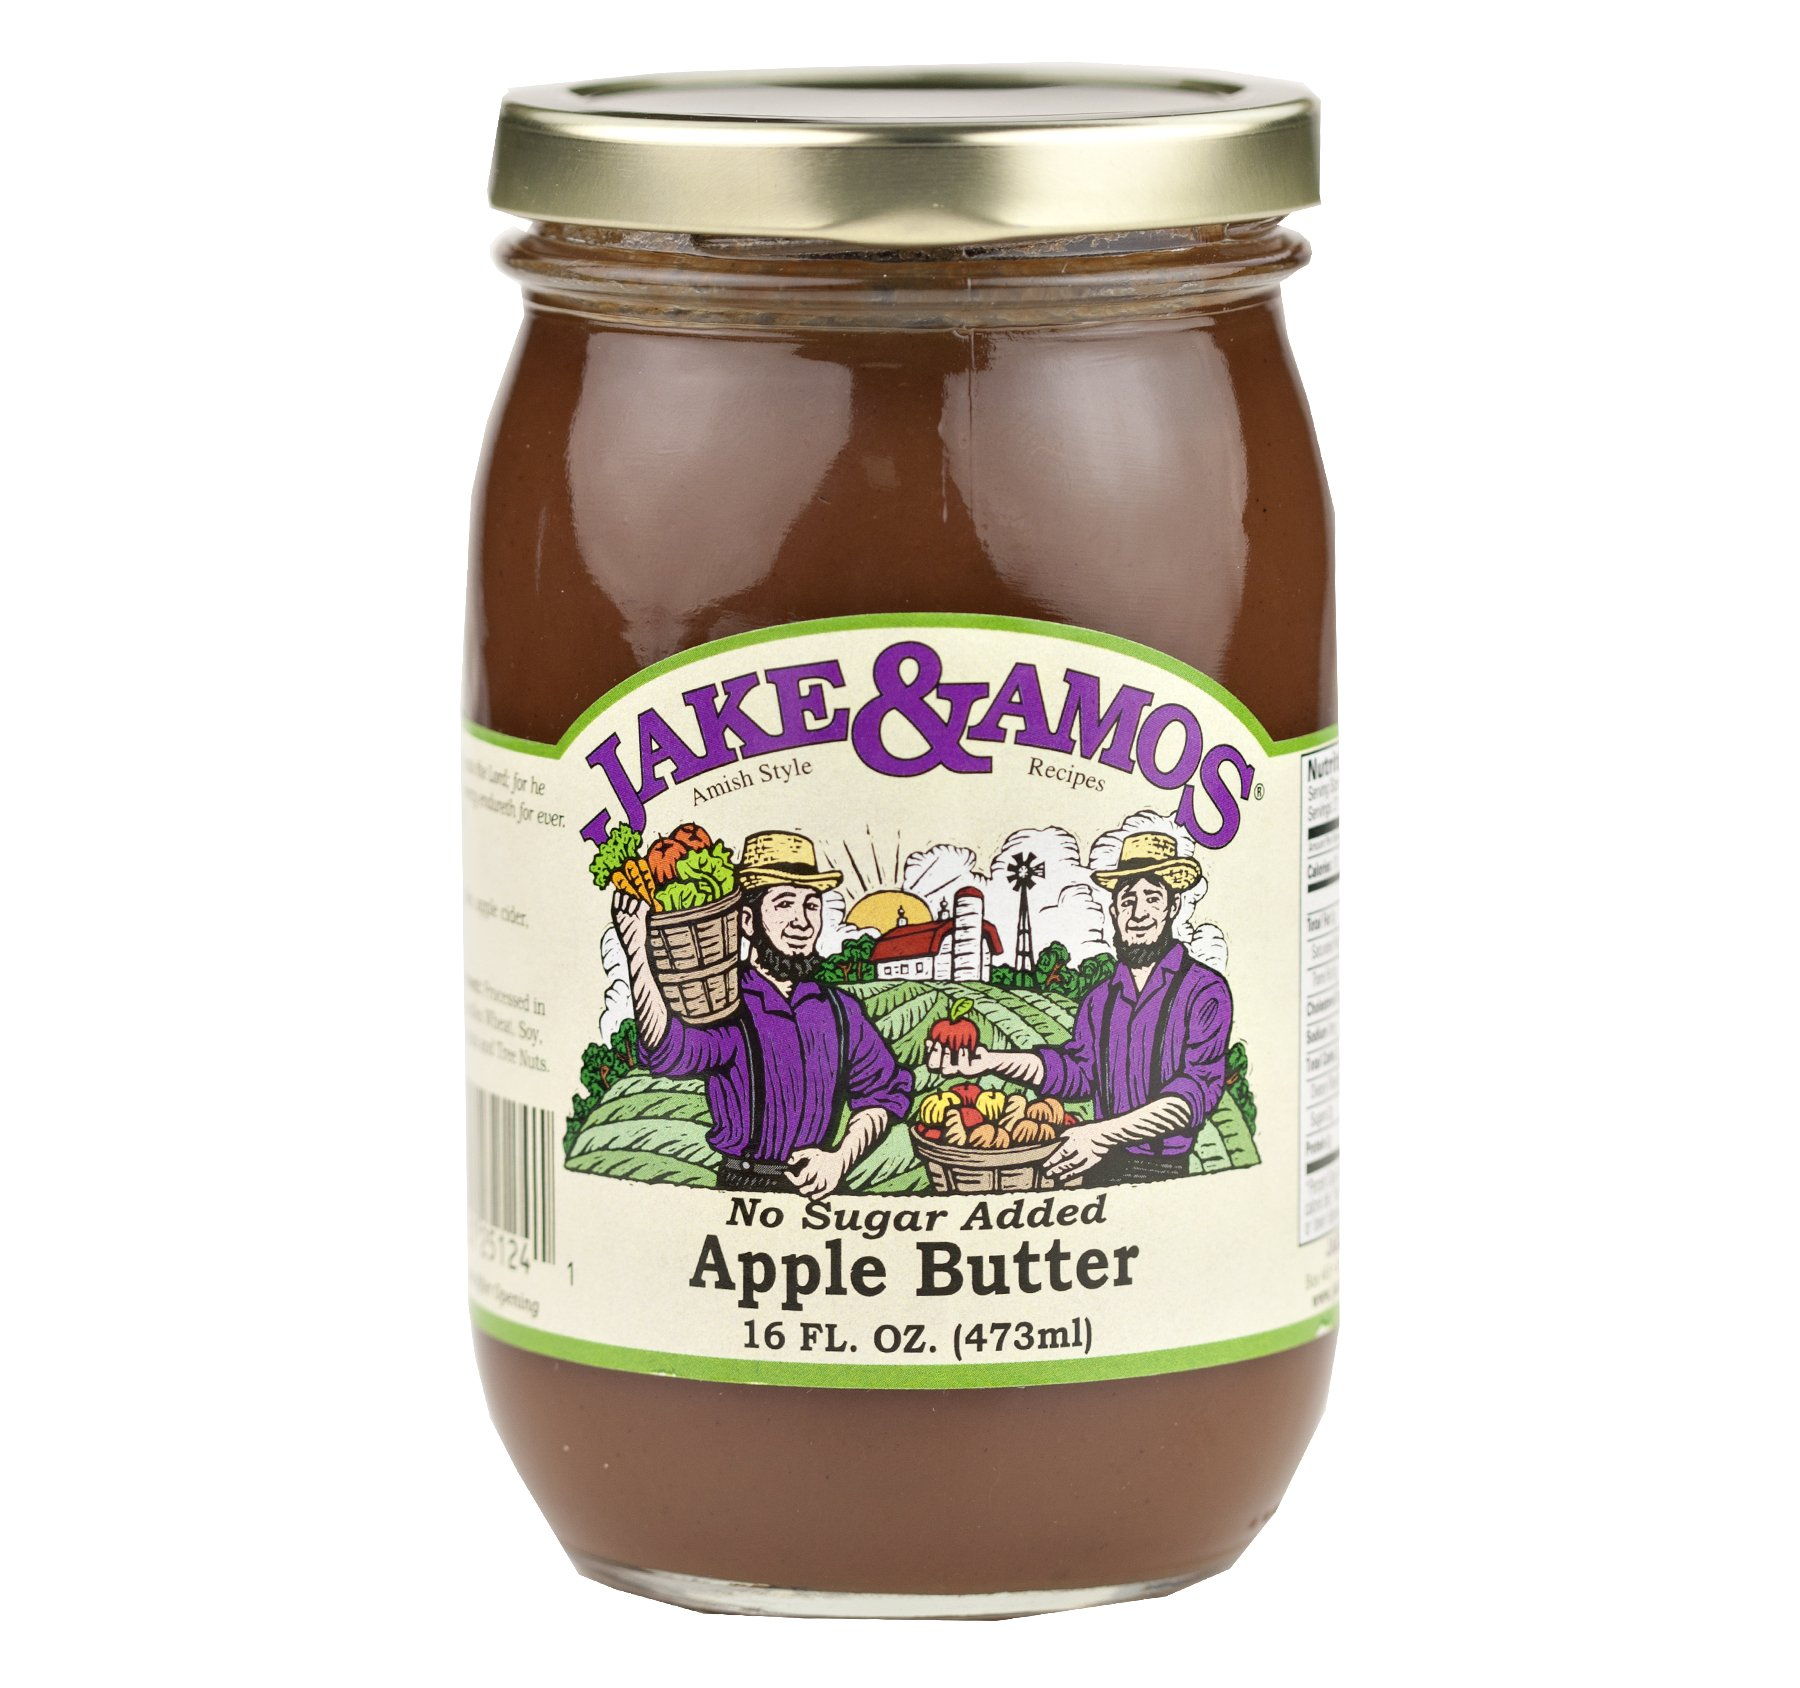 Jake & Amos Apple Butter With Spice No Sugar 16 oz. (3 Jars)